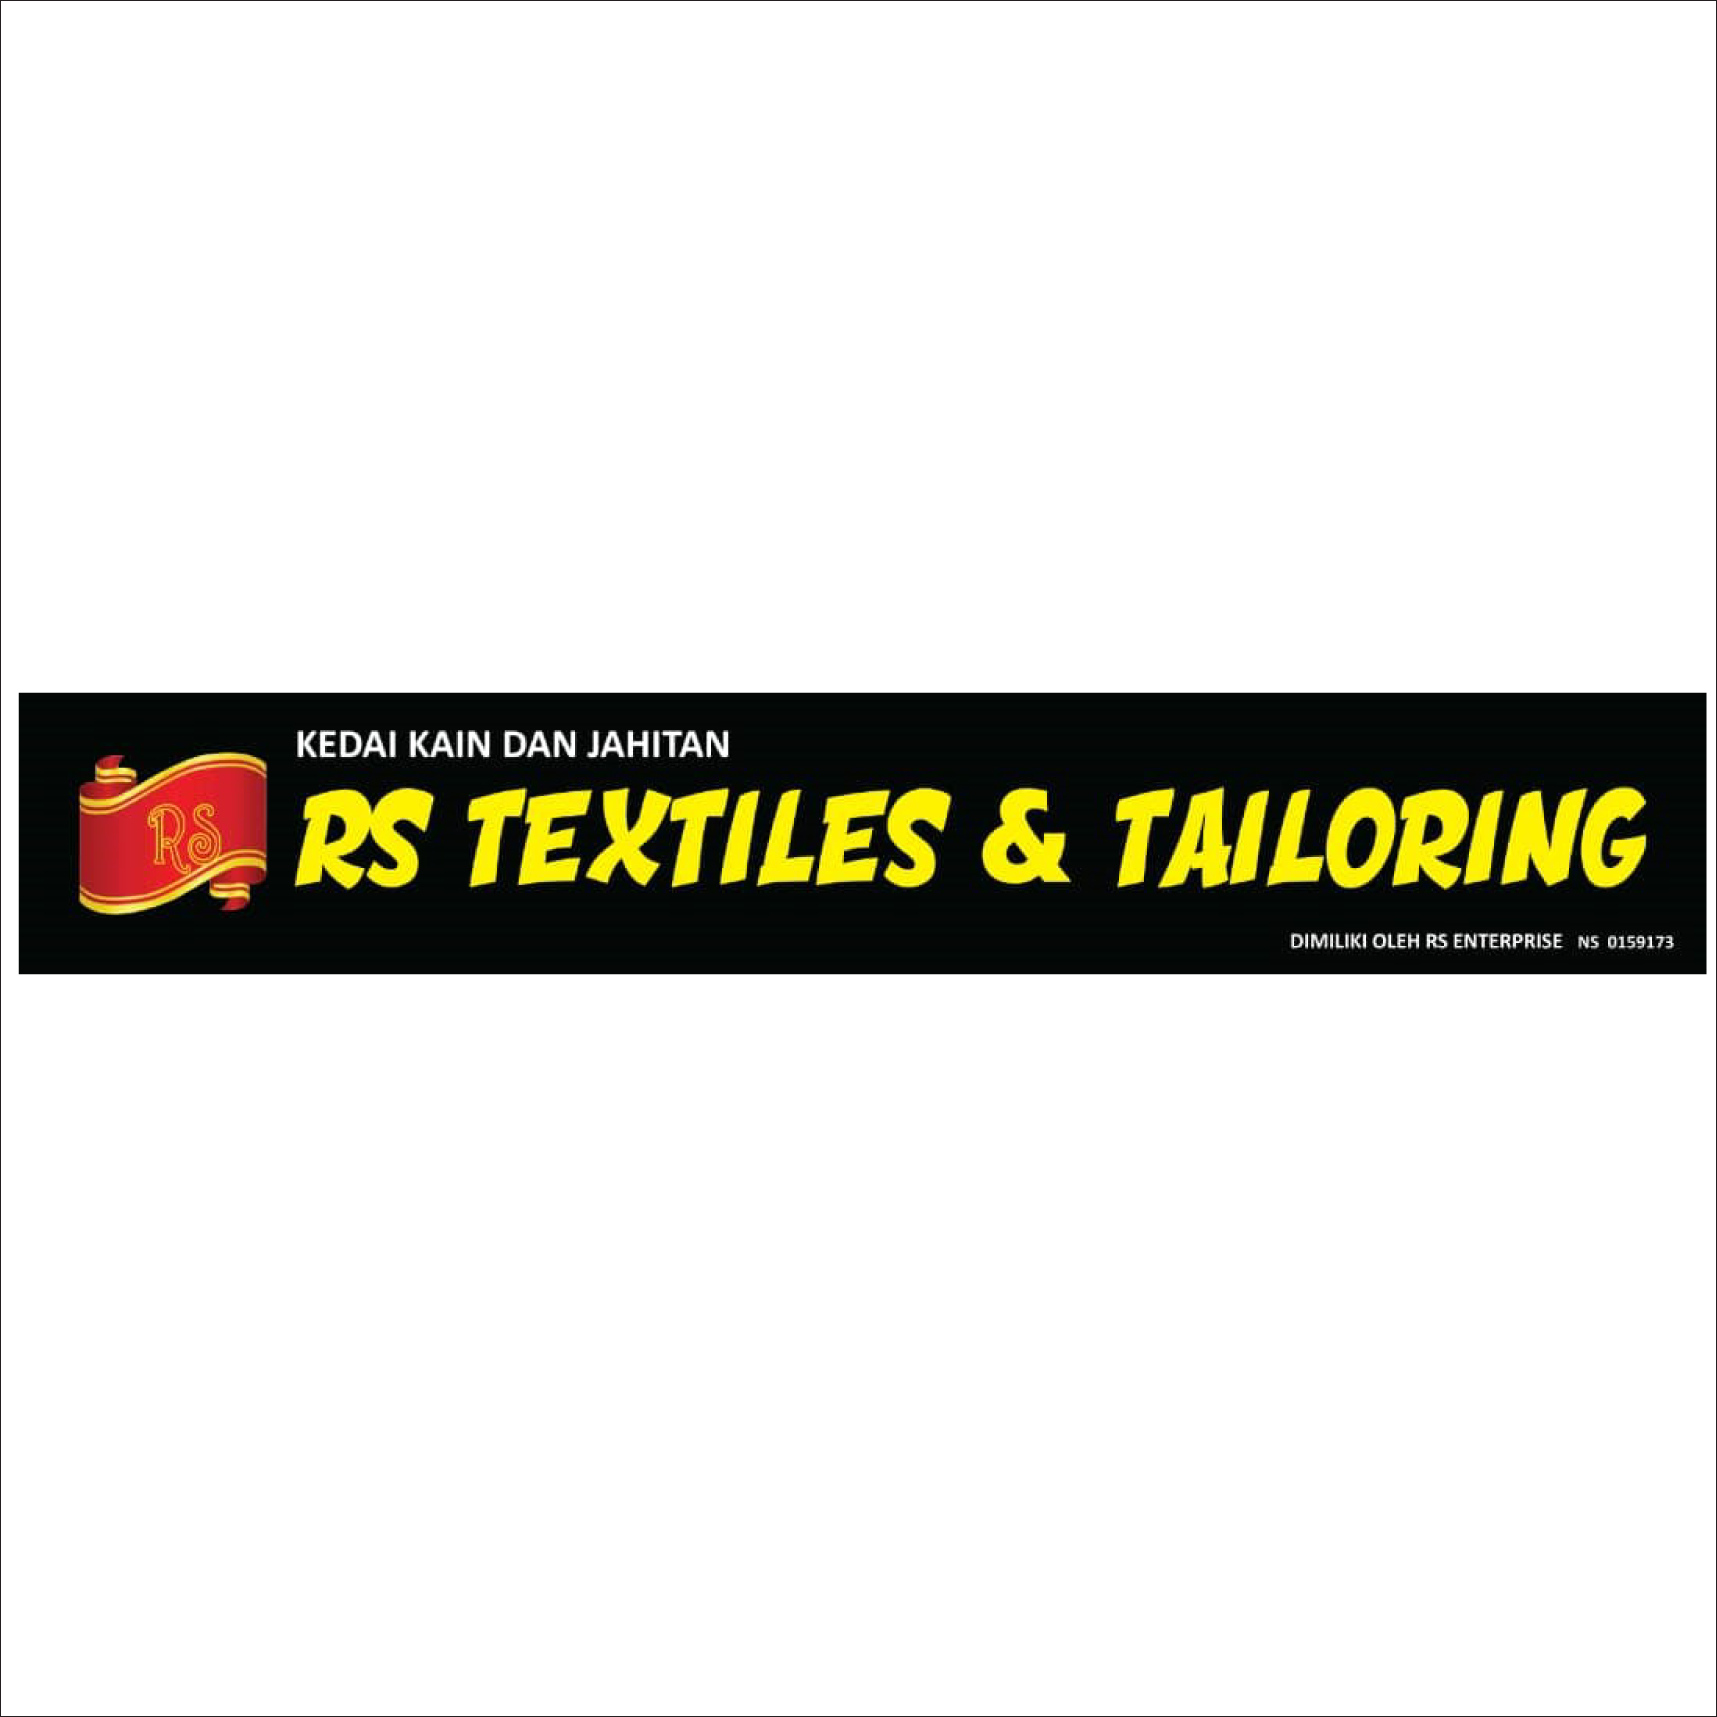 RS TEXTILES & TAILORING